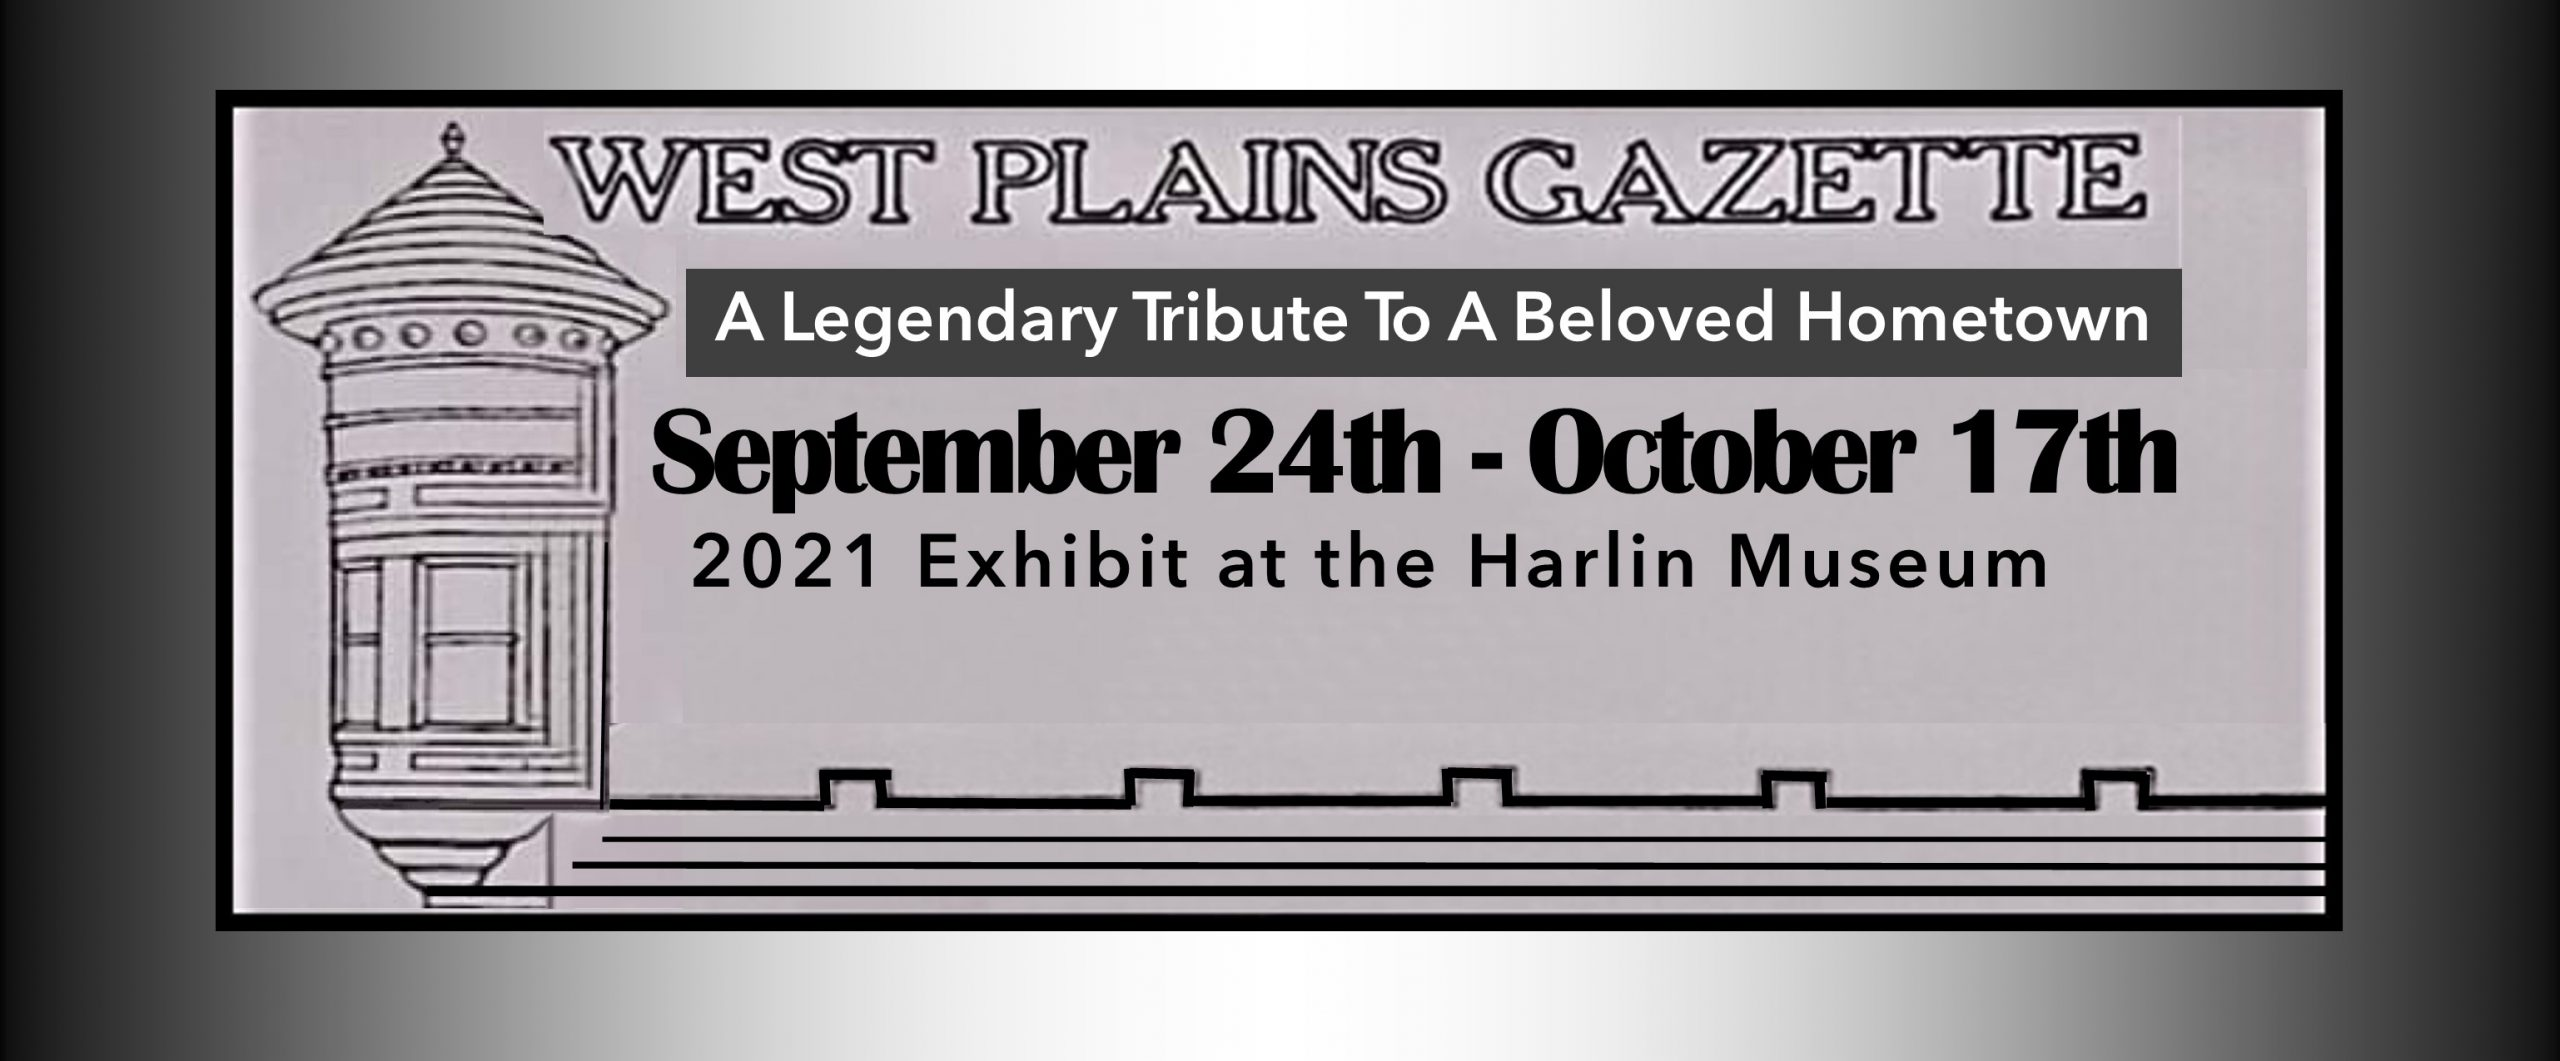 West Plains Gazette Exhibit: A Legendary Tribute To A Beloved Hometown @ Harlin Museum; Upper Level, Hathcock Gallery